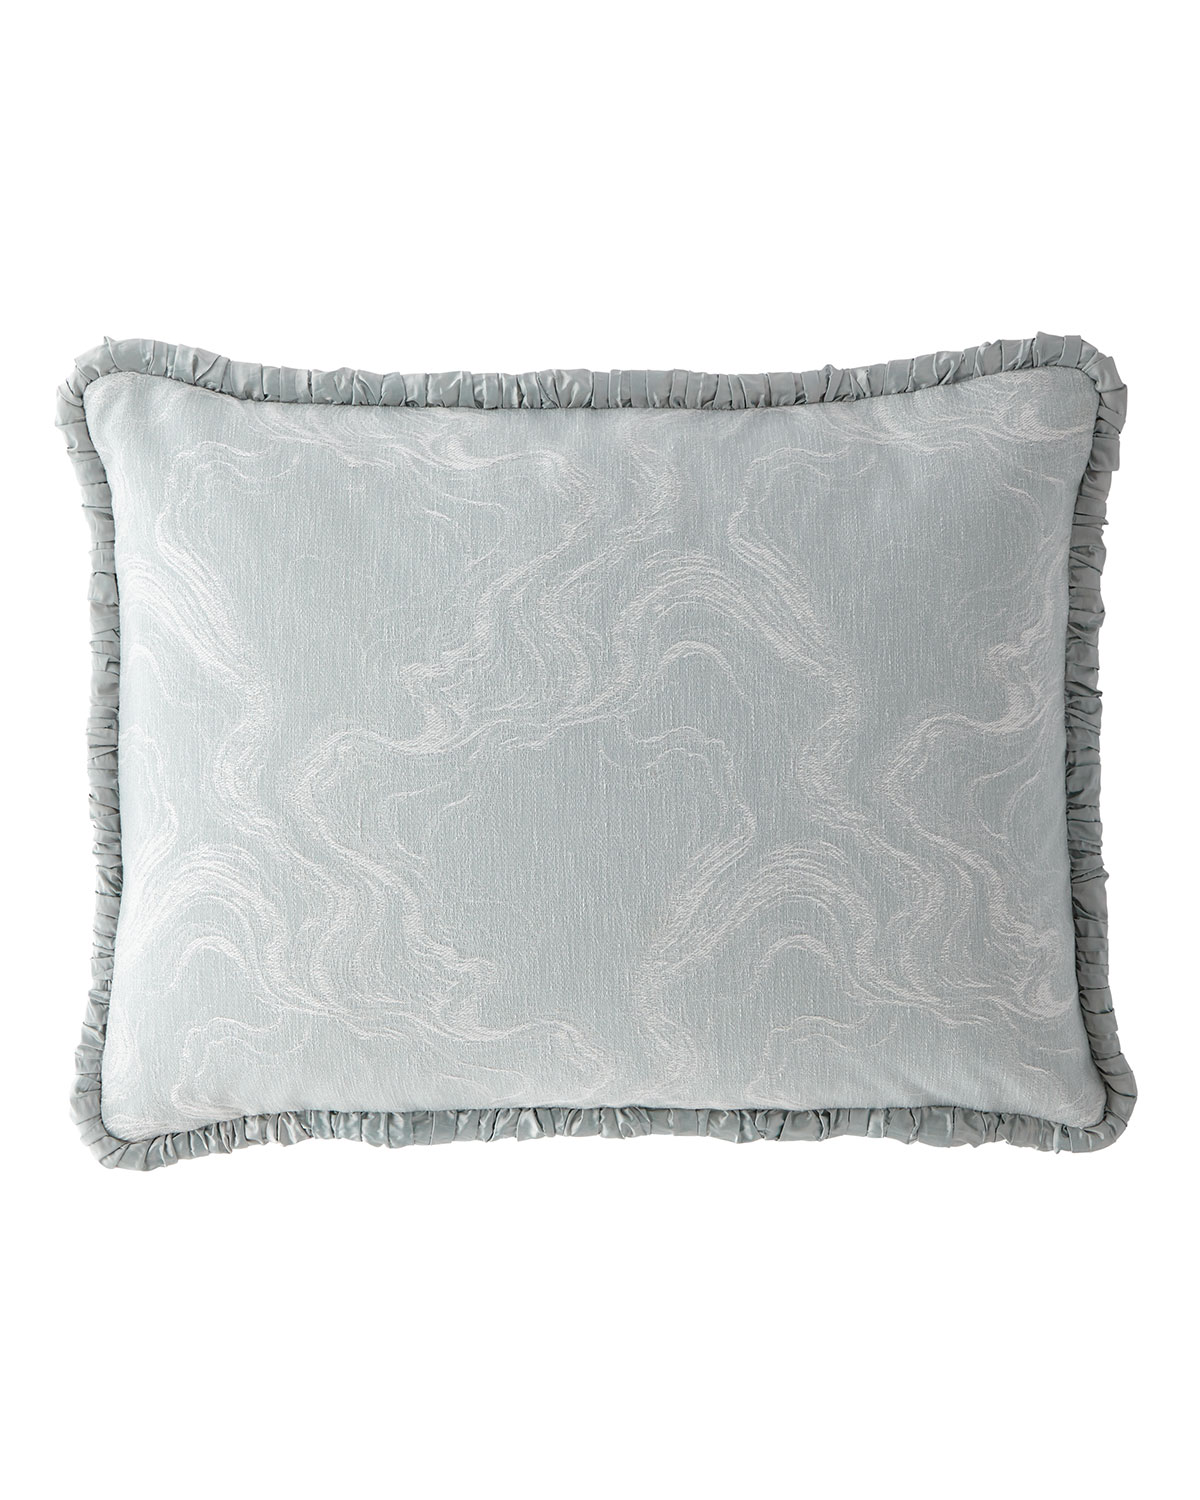 Dian Austin Couture Home Quartzite King Sham with Silk Piping